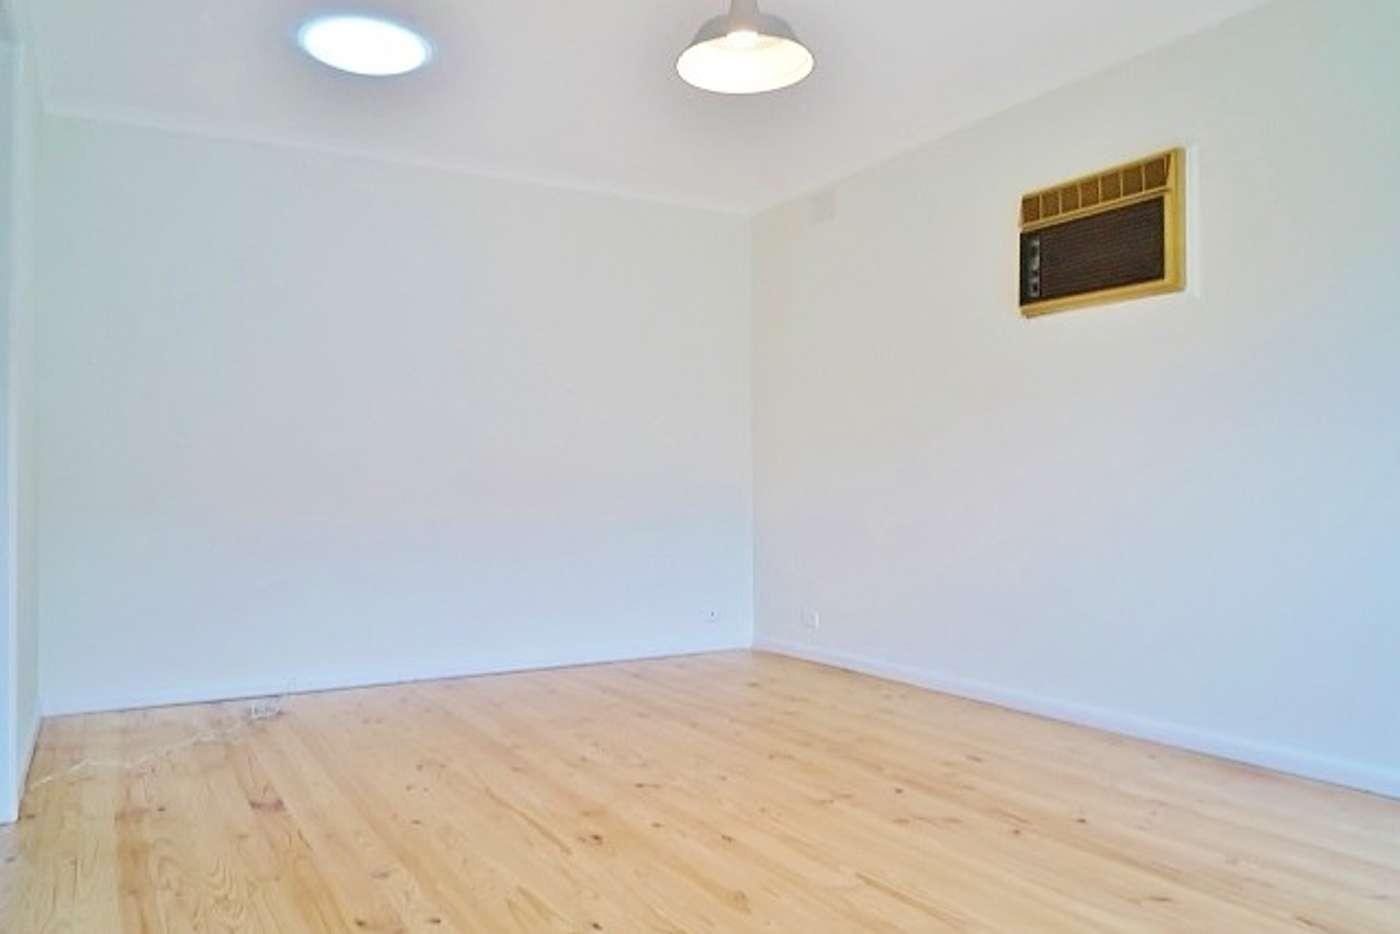 Sixth view of Homely unit listing, 5/19 Glanfield Street, Northcote VIC 3070